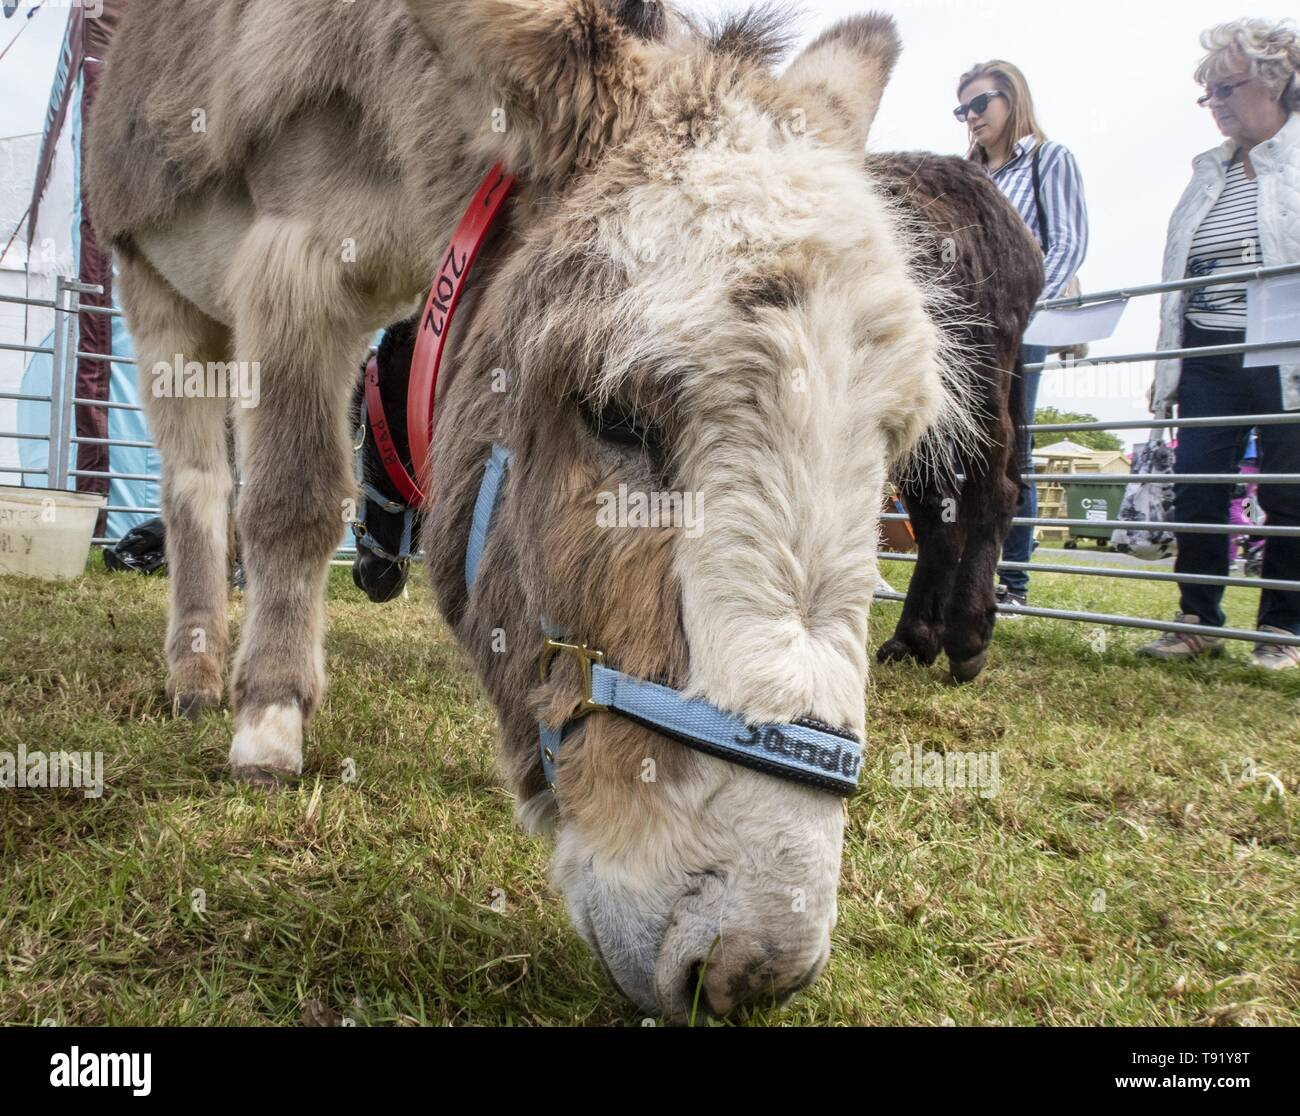 Exeter, Devon, UK. 16th May 2019 Donkeys from the Sidmouth Donkey Santuary on show on the first day of the Devon County Show, at the Westpoint Showground, Exeter Credit: Photo Central/Alamy Live News Stock Photo